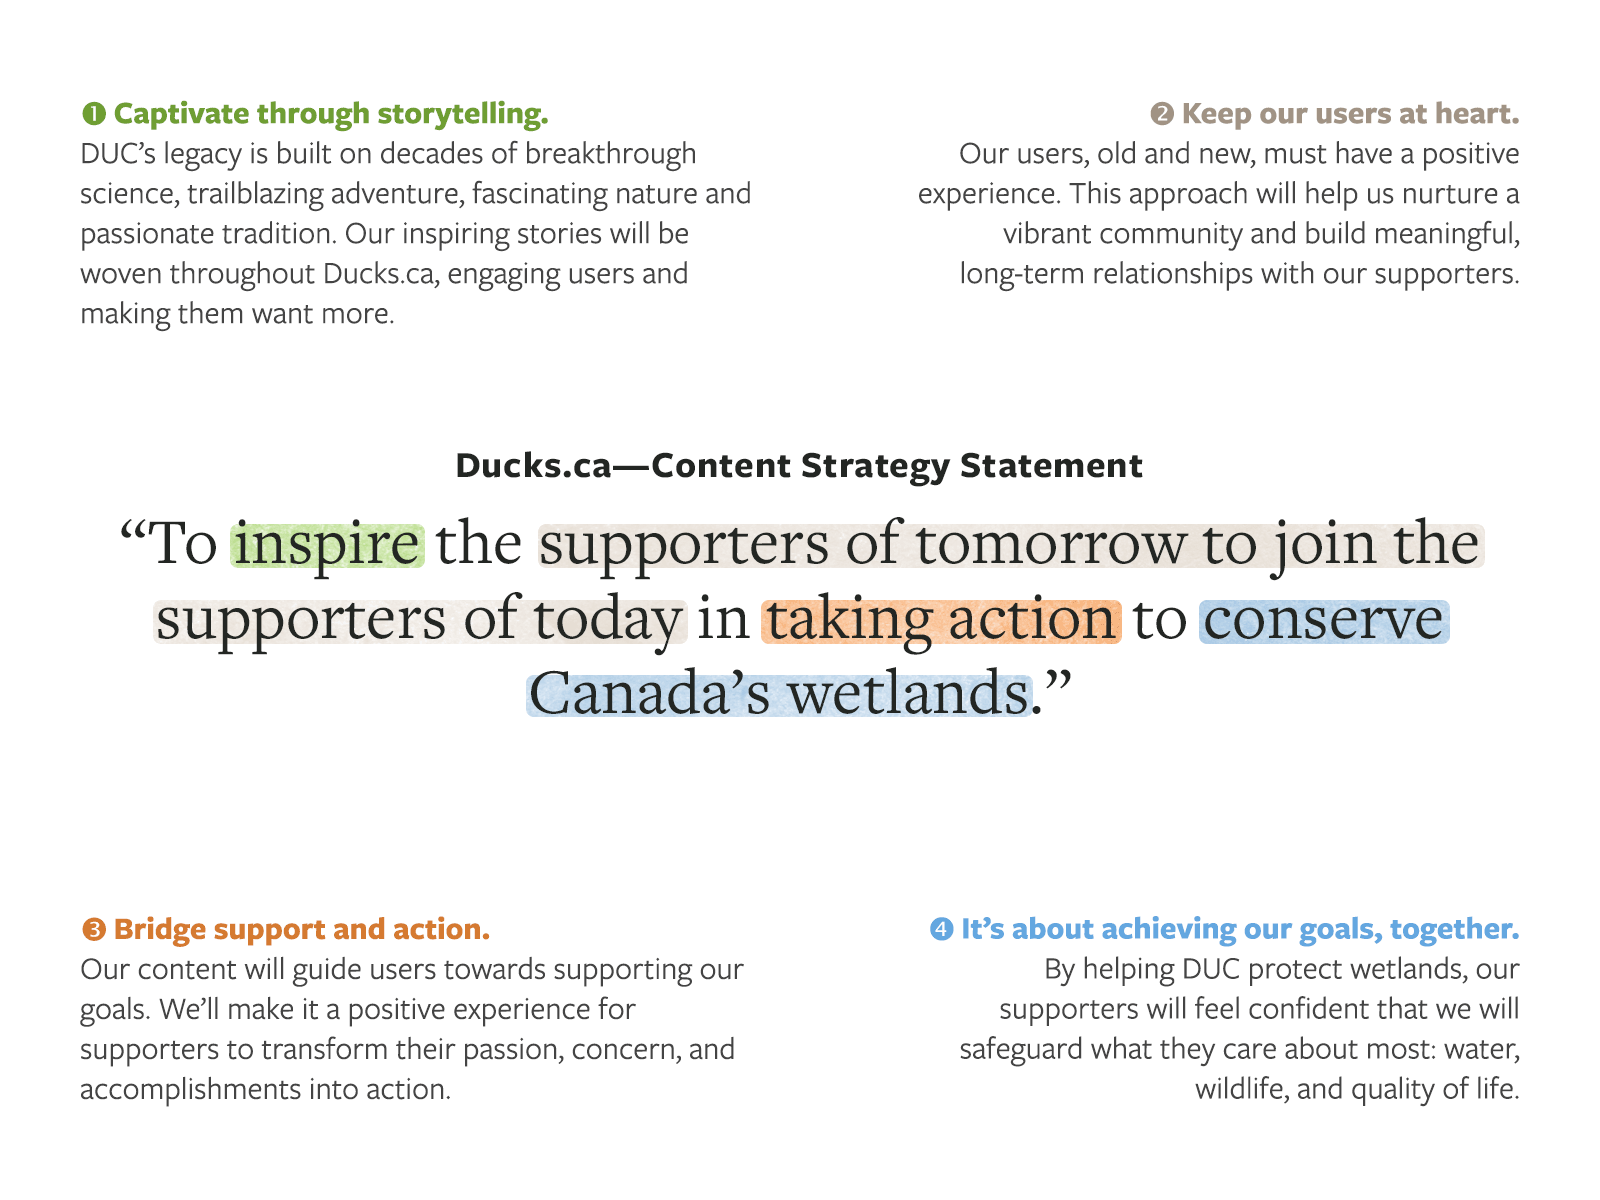 duc content strategy